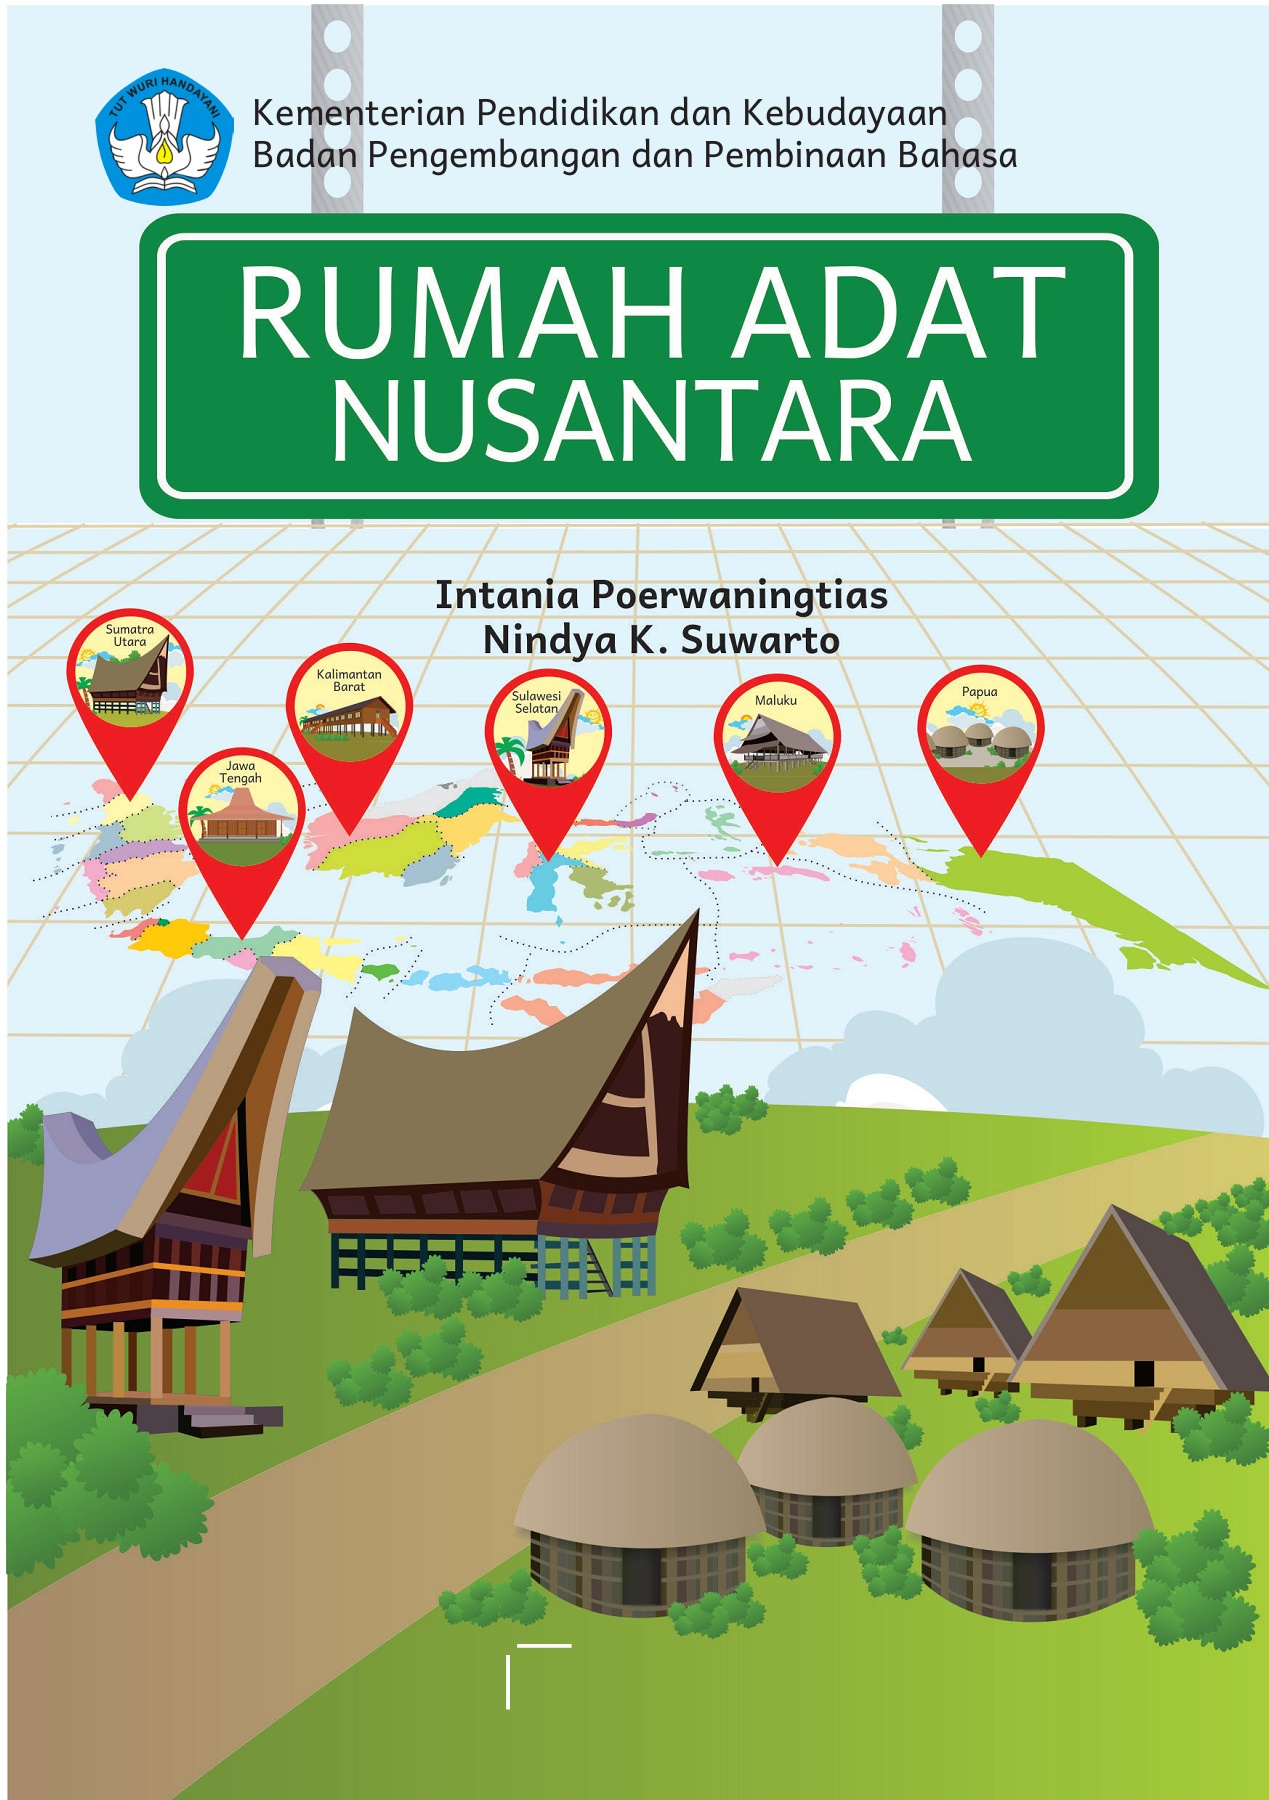 Rumah Adat Nusantara Pages 51 69 Text Version